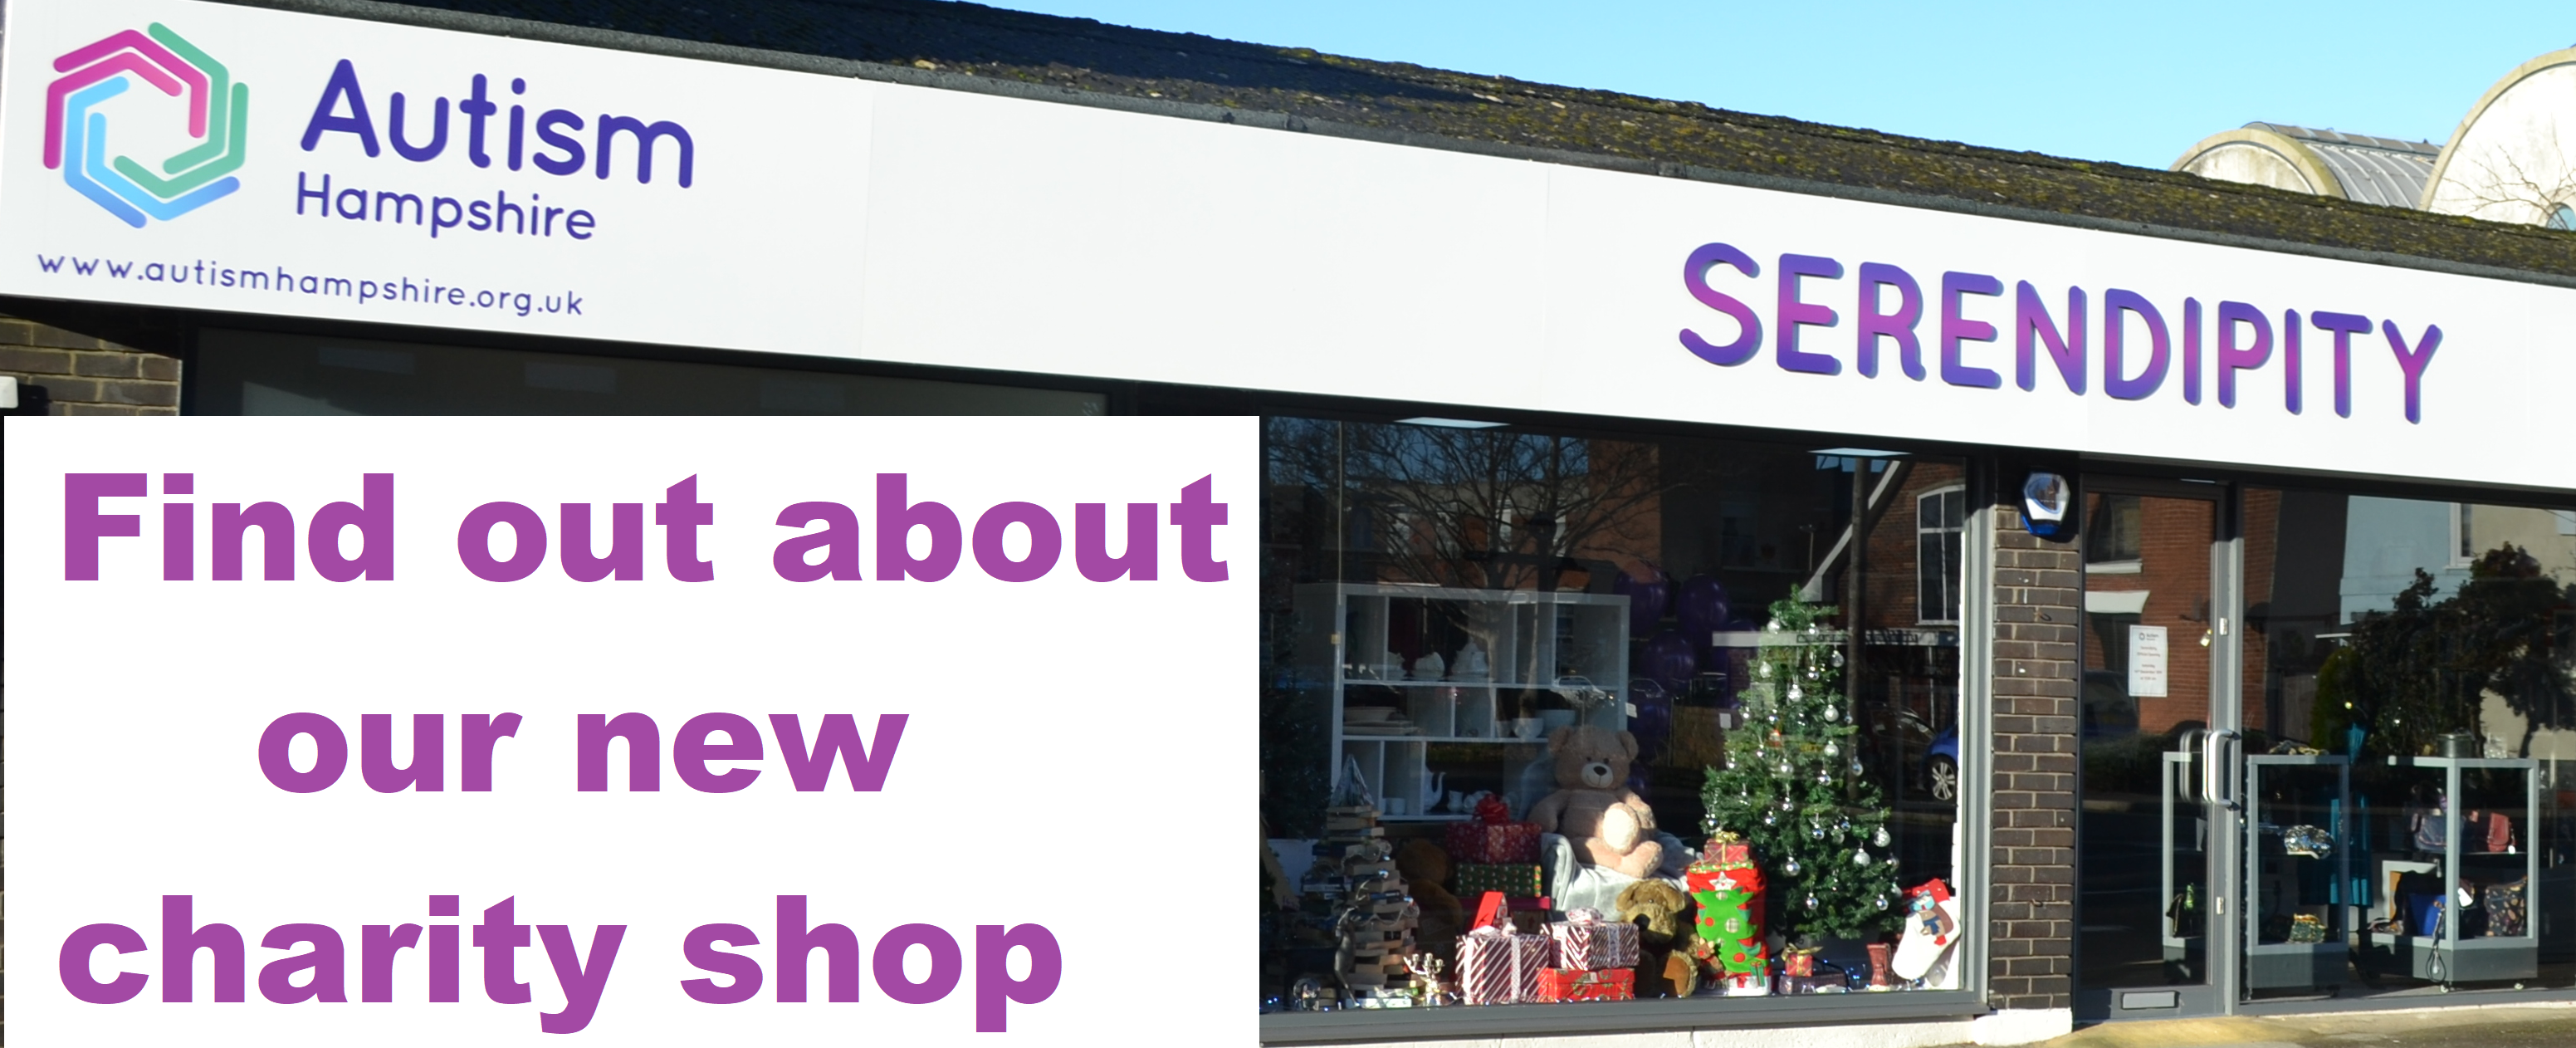 Visit our NEW charity shop - Serendipity